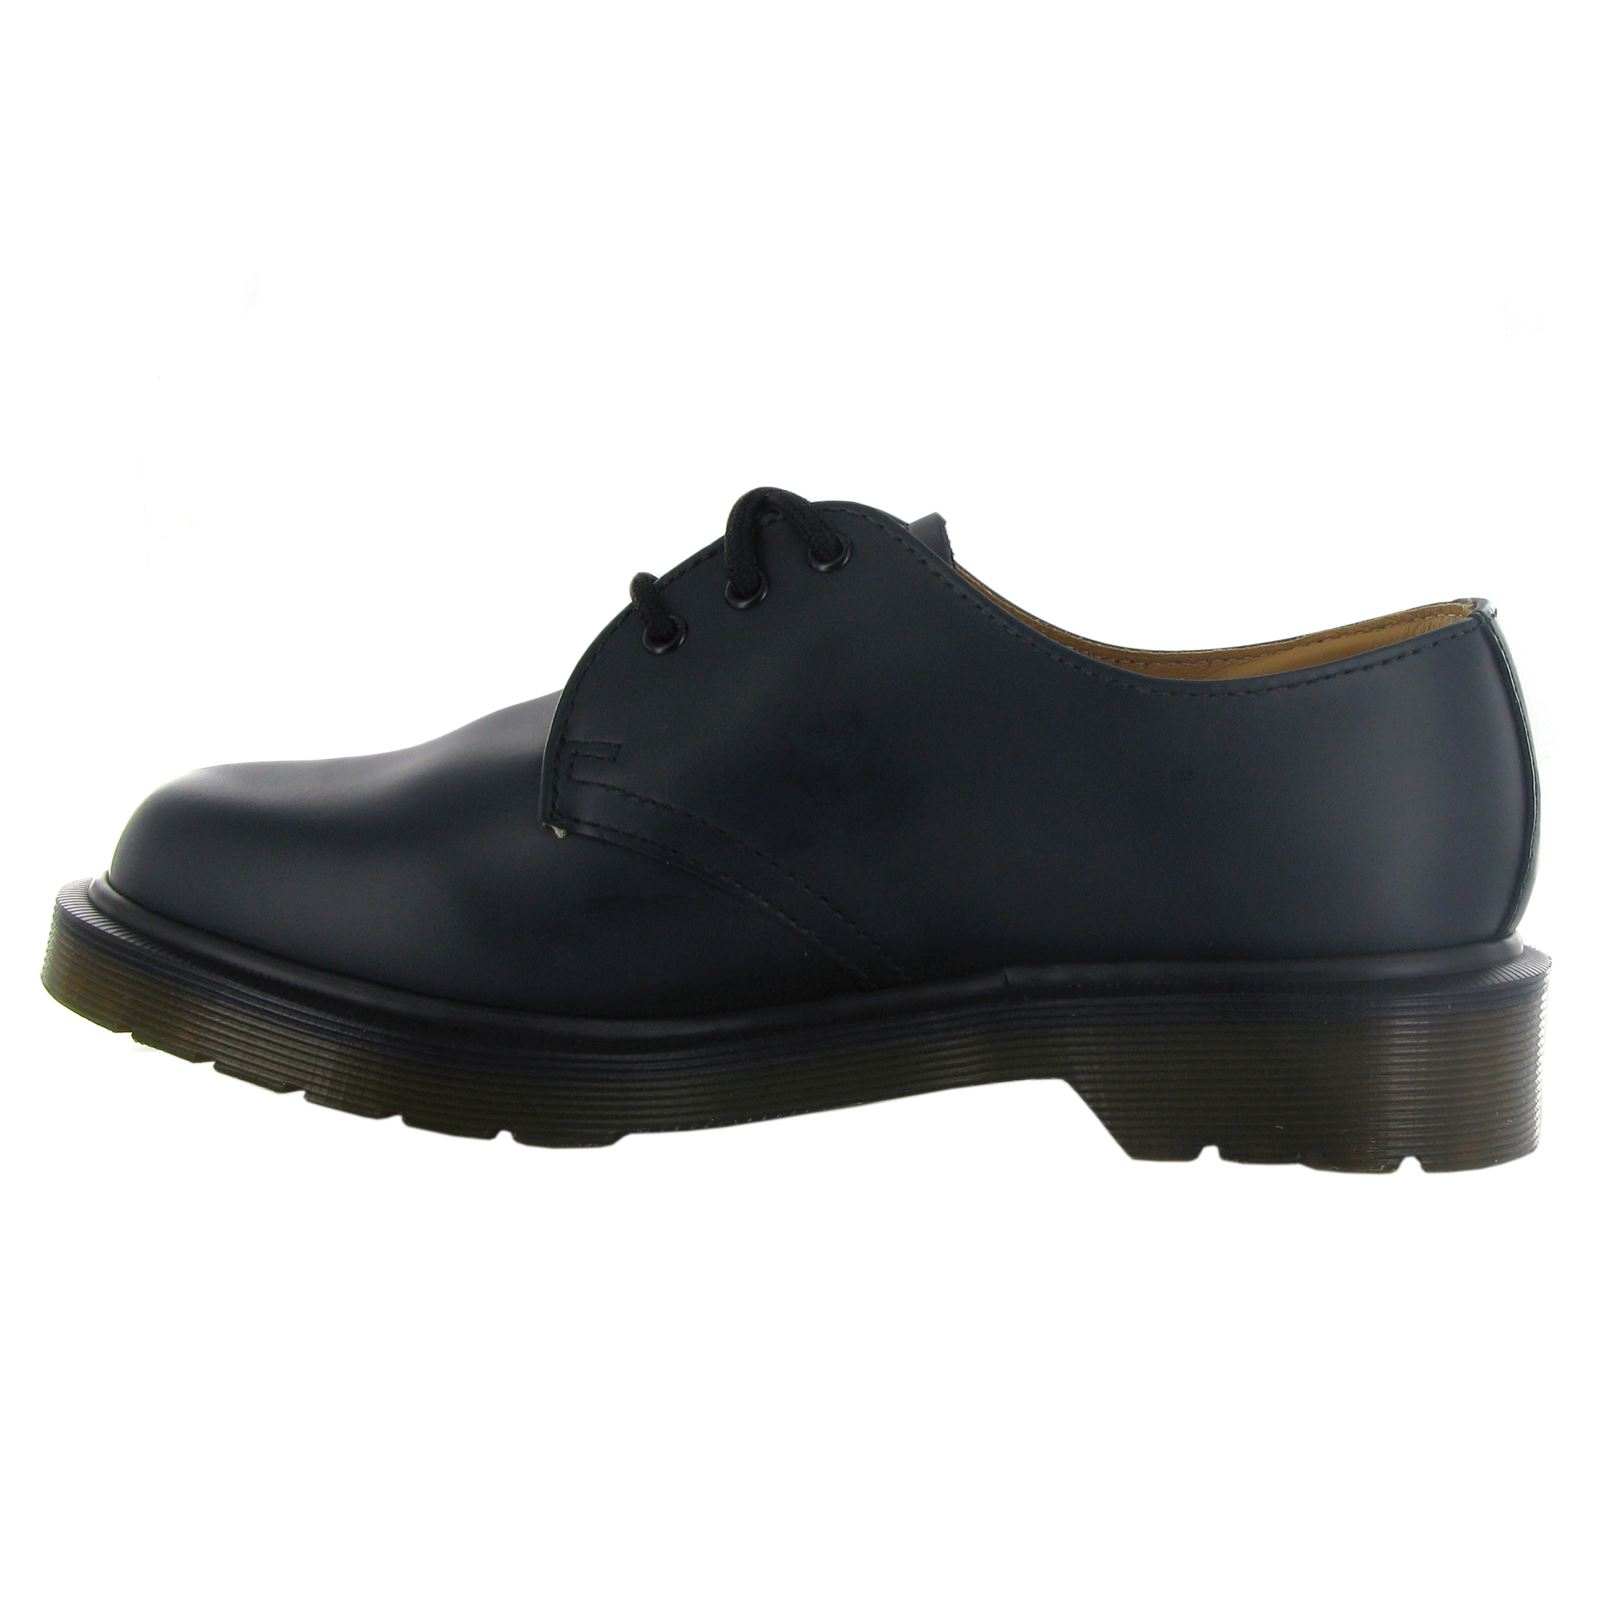 dr martens 1461 pw leather unisex mens womens non